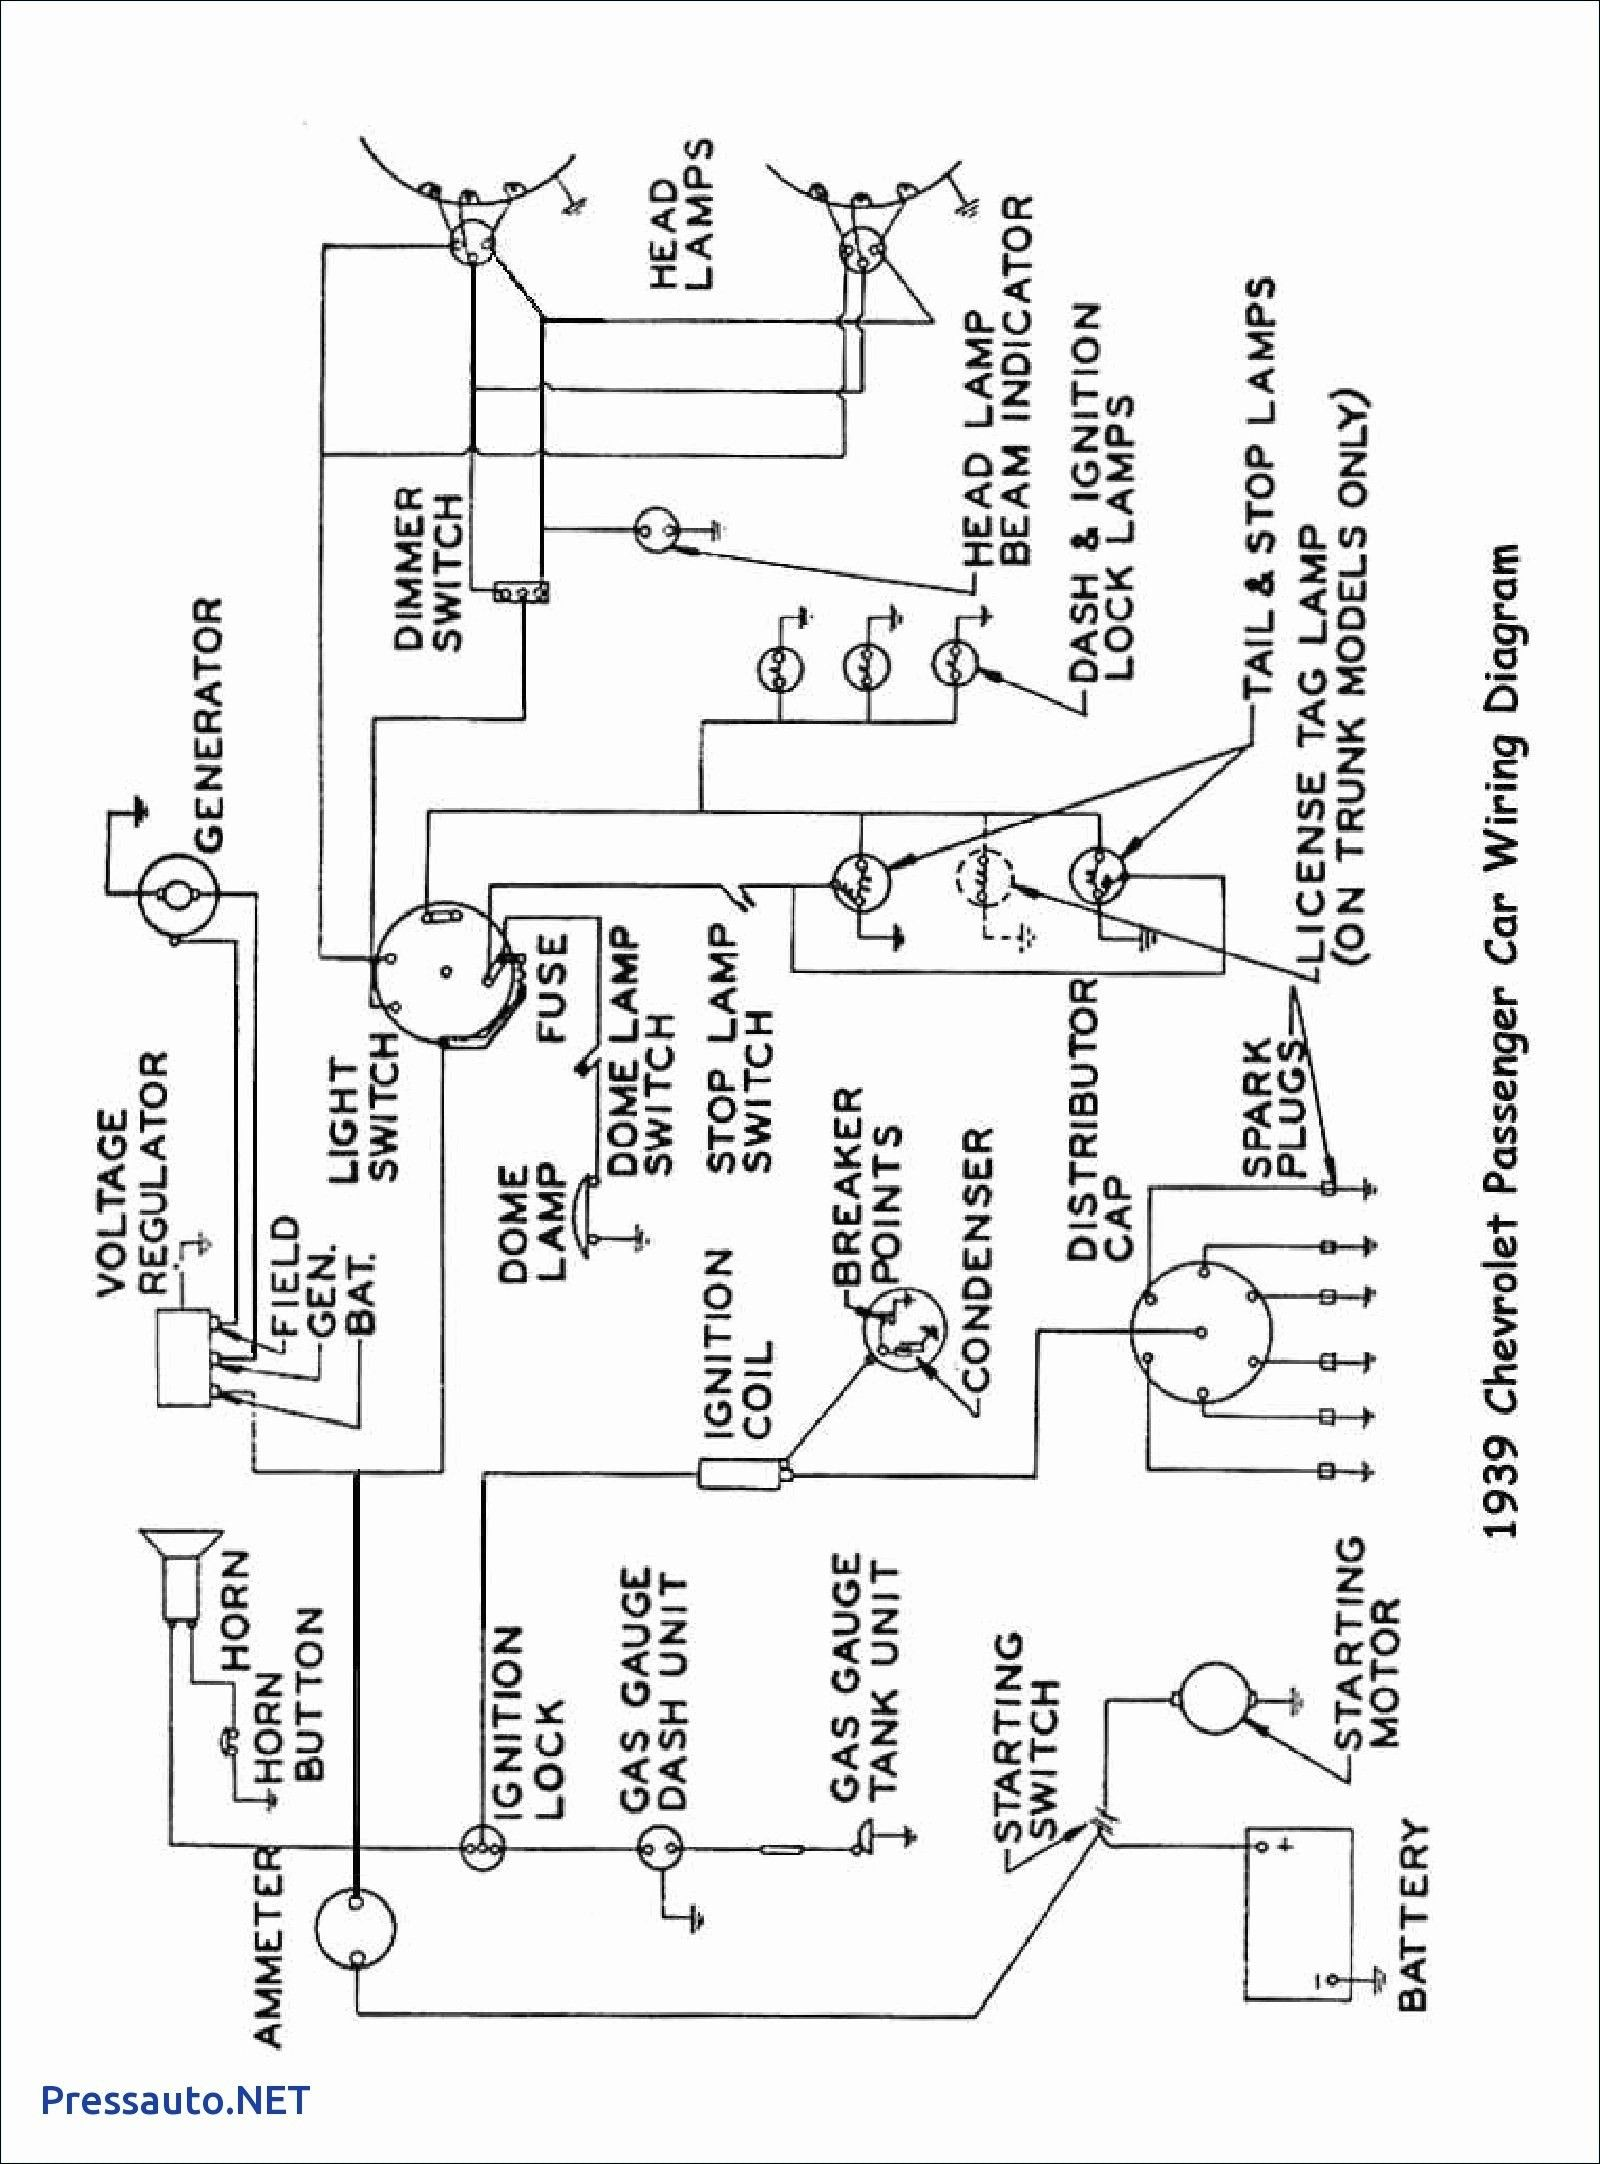 New Car Dimmer Switch Wiring Diagram Diagram Diagramtemplate Diagramsample Electromecanica Tecnologia